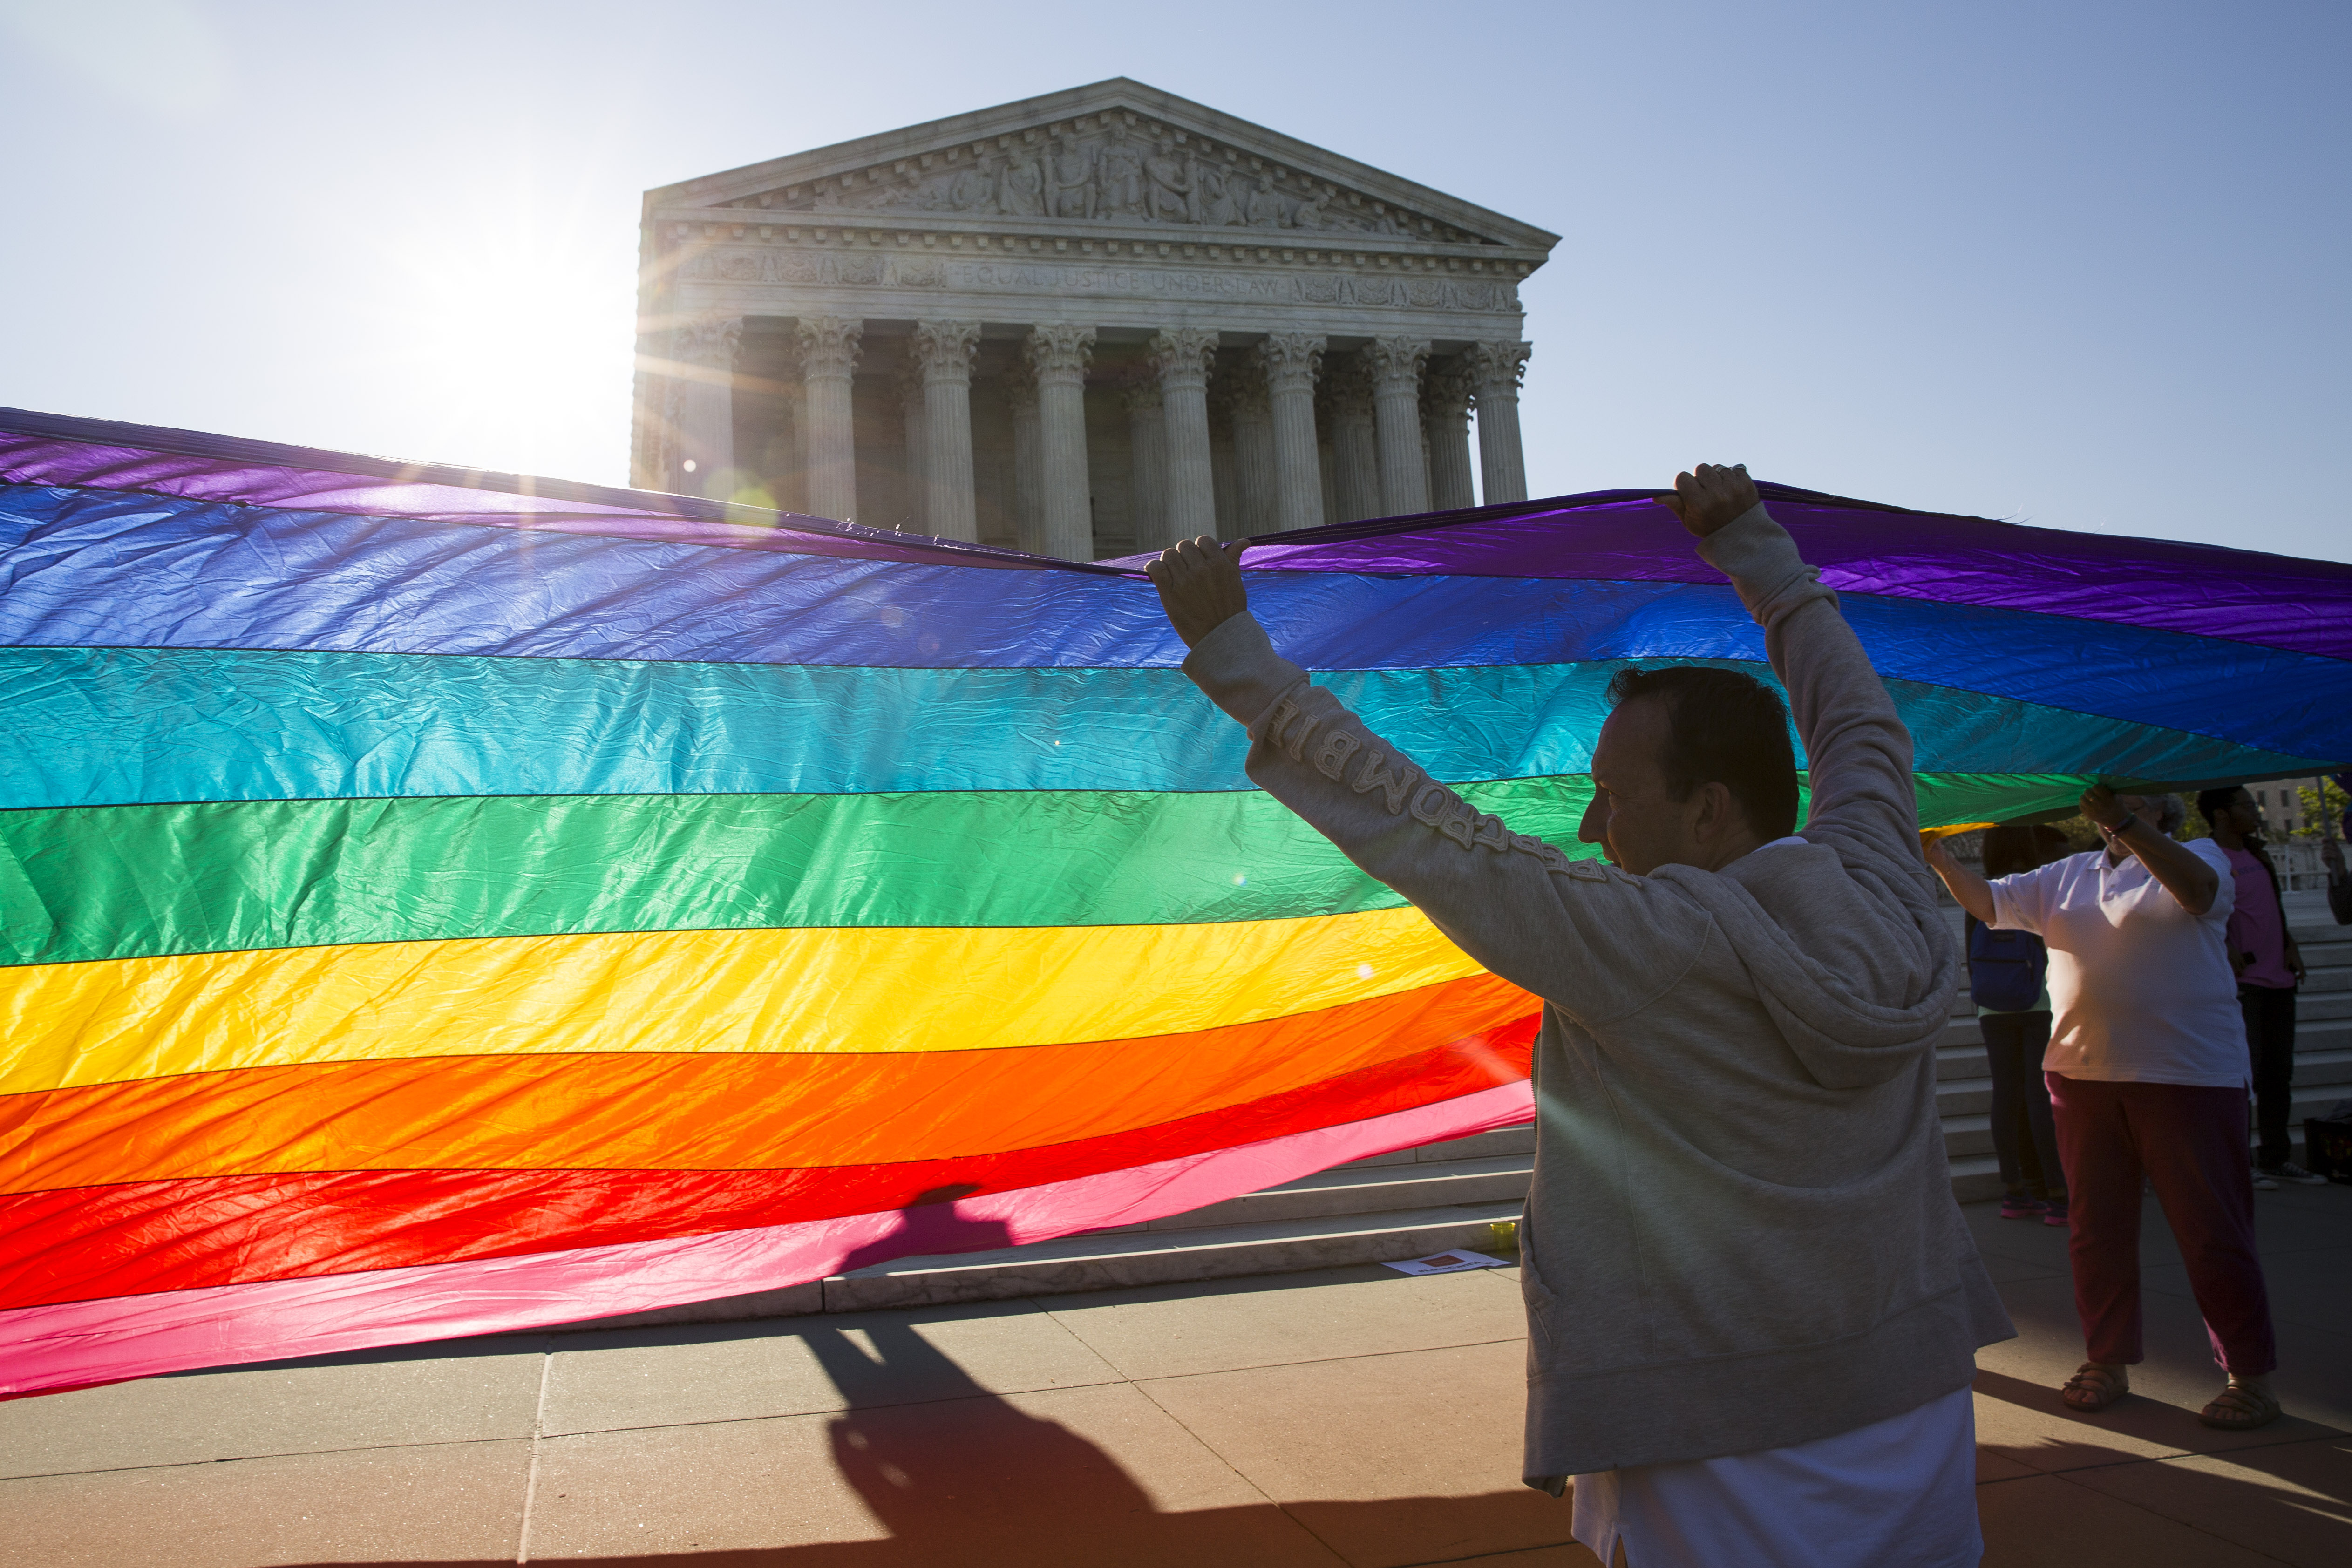 Supporters of same-sex marriage unfurl a large rainbow pride flag near the Supreme Court, April 28, 2015 in Washington, DC. (Getty)